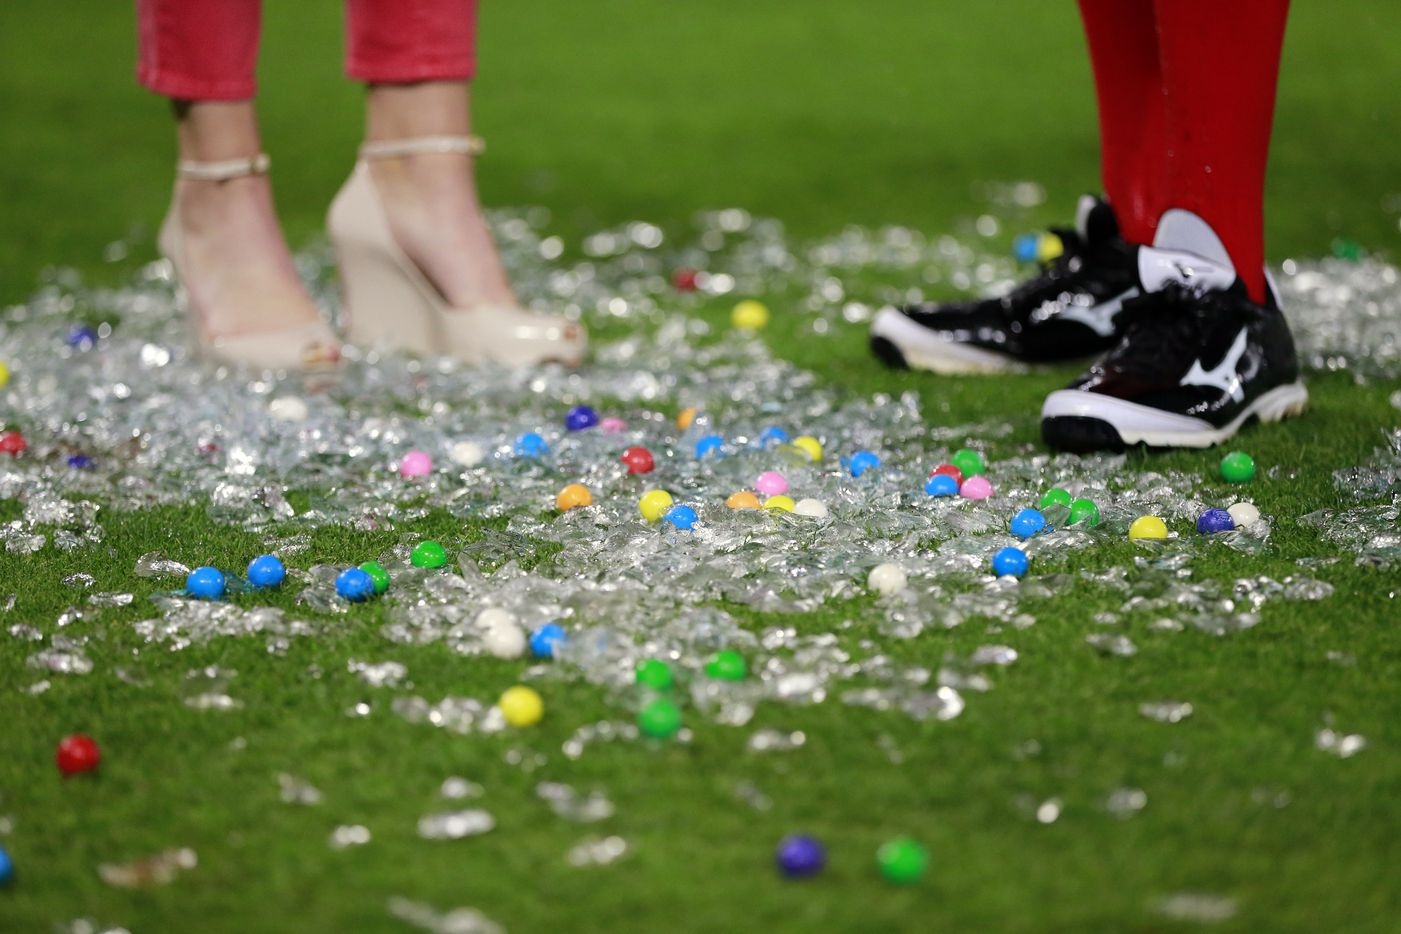 FOX Sports Southwest reporter Emily Jones and Texas Rangers left fielder Ian Desmond stood among the ice cubes and gumballs after Desmond was doused with cooler full of sport drinks following their 7-5 win at the Globe Life Park in Arlington on April 19, 2016.